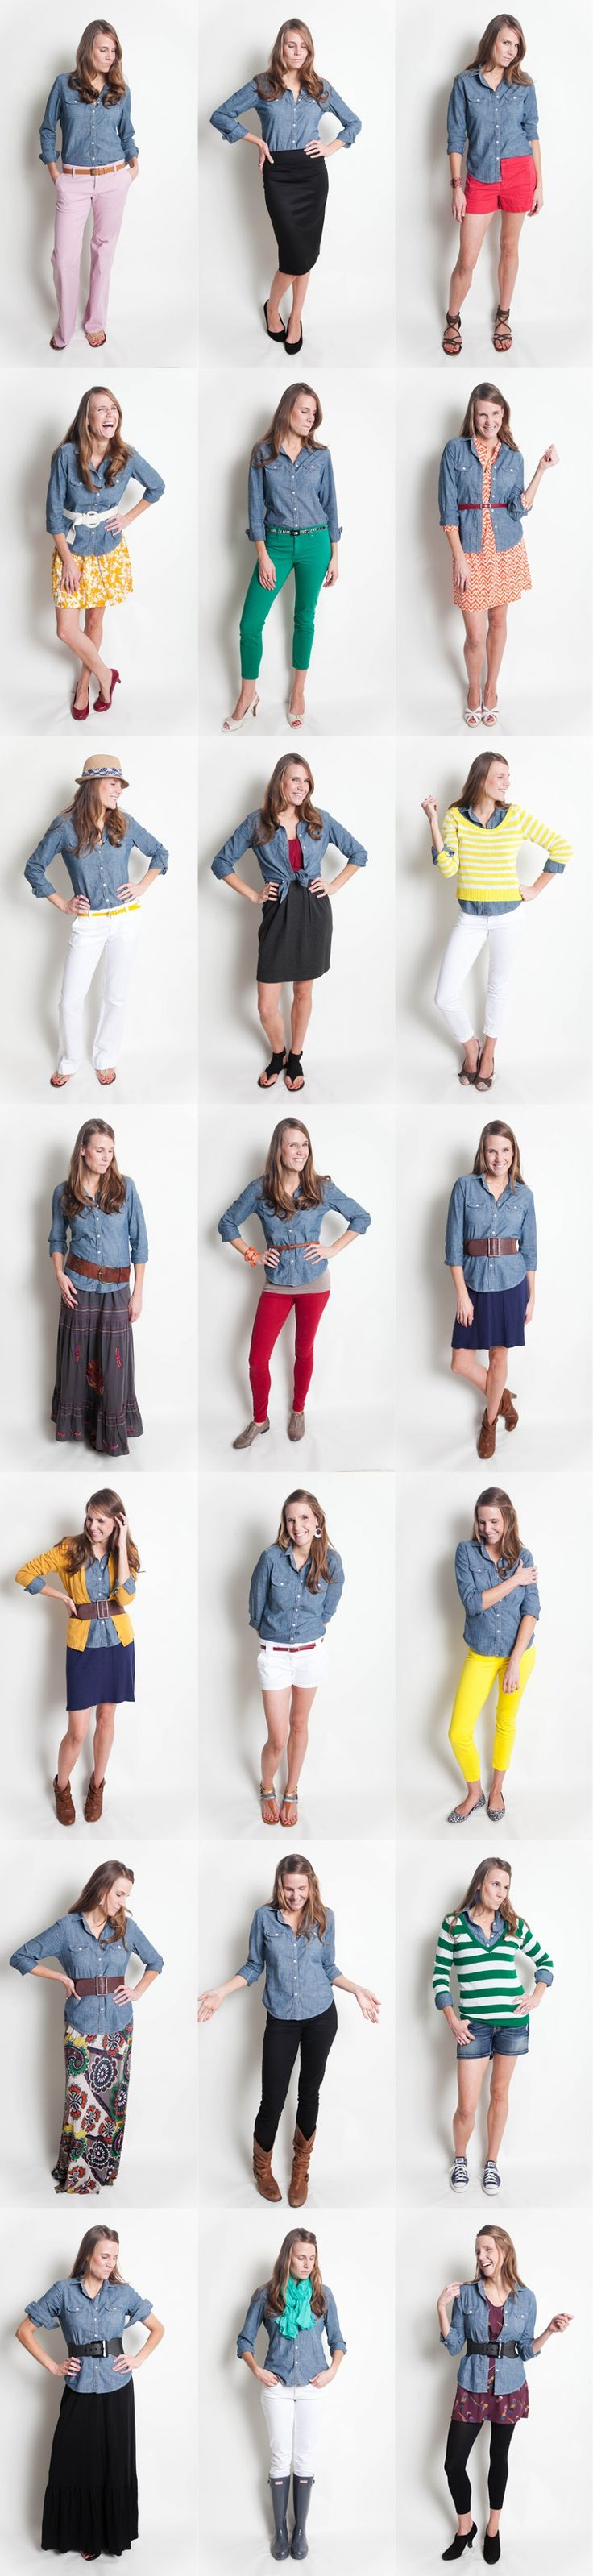 chambray-shirt-project: lots of ideas on how to wear a chambray shirt in a variety of looks.